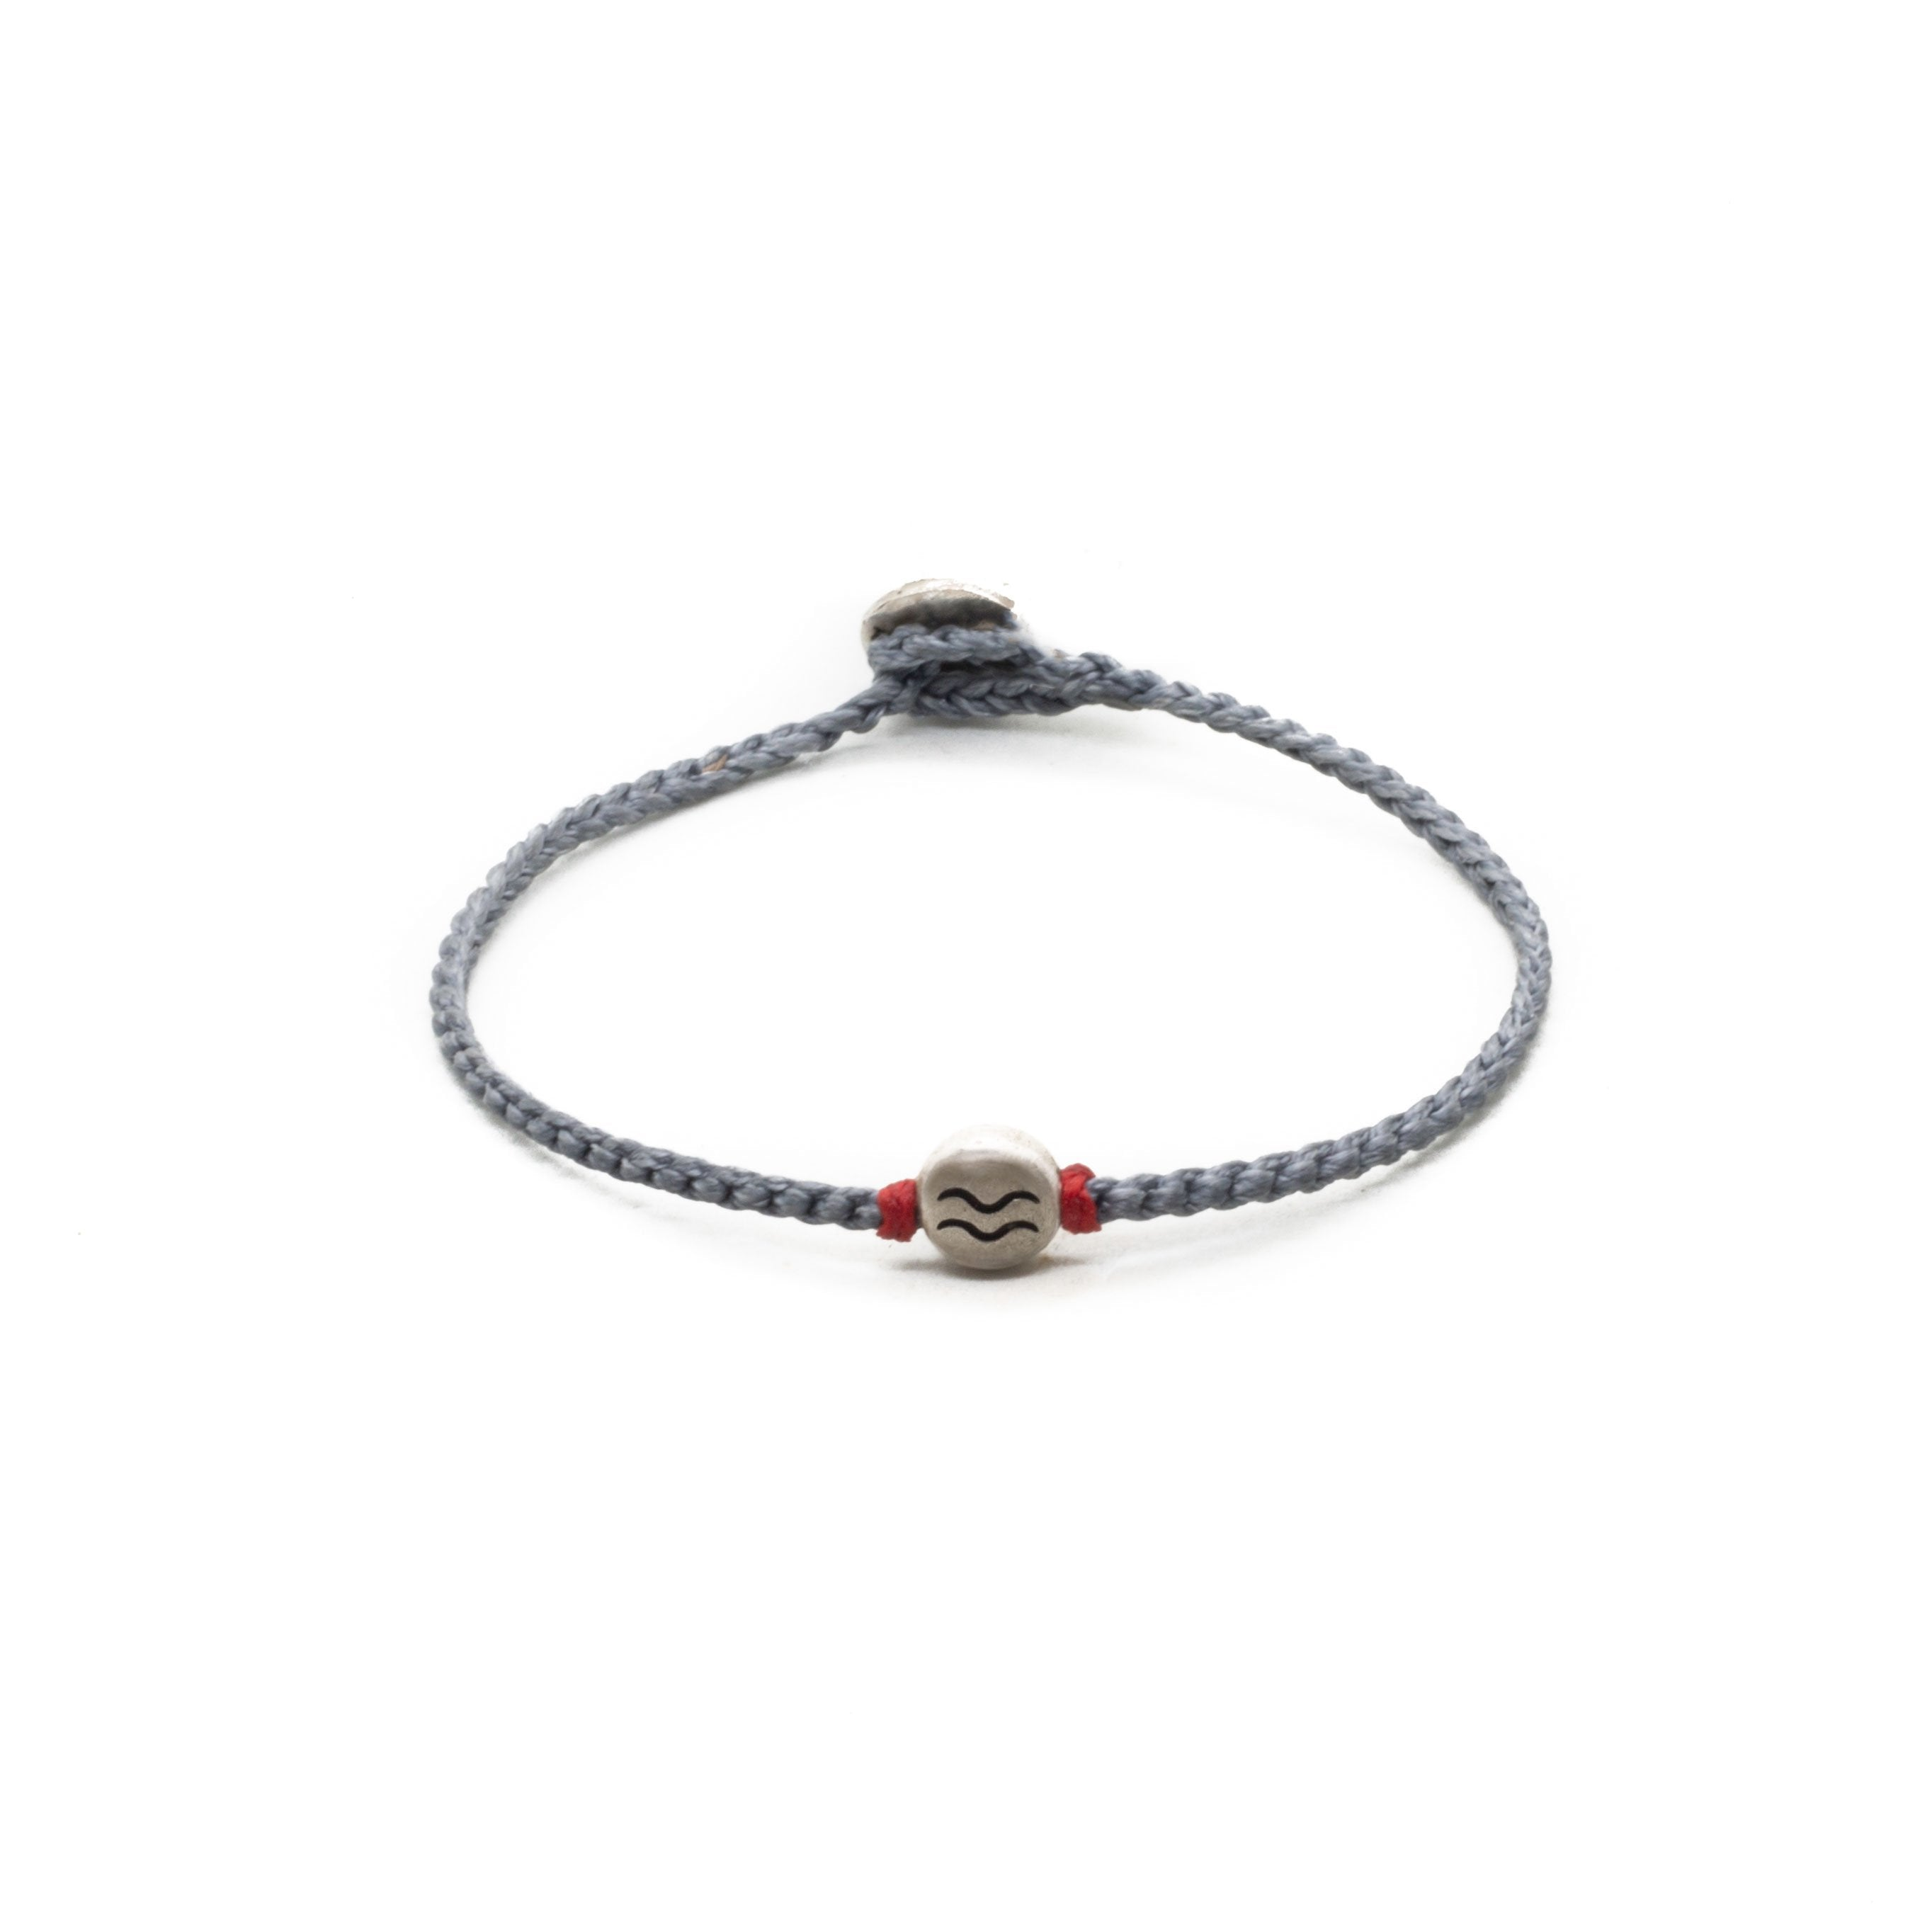 Aquarius zodiac sign grey hand braided bracelet.